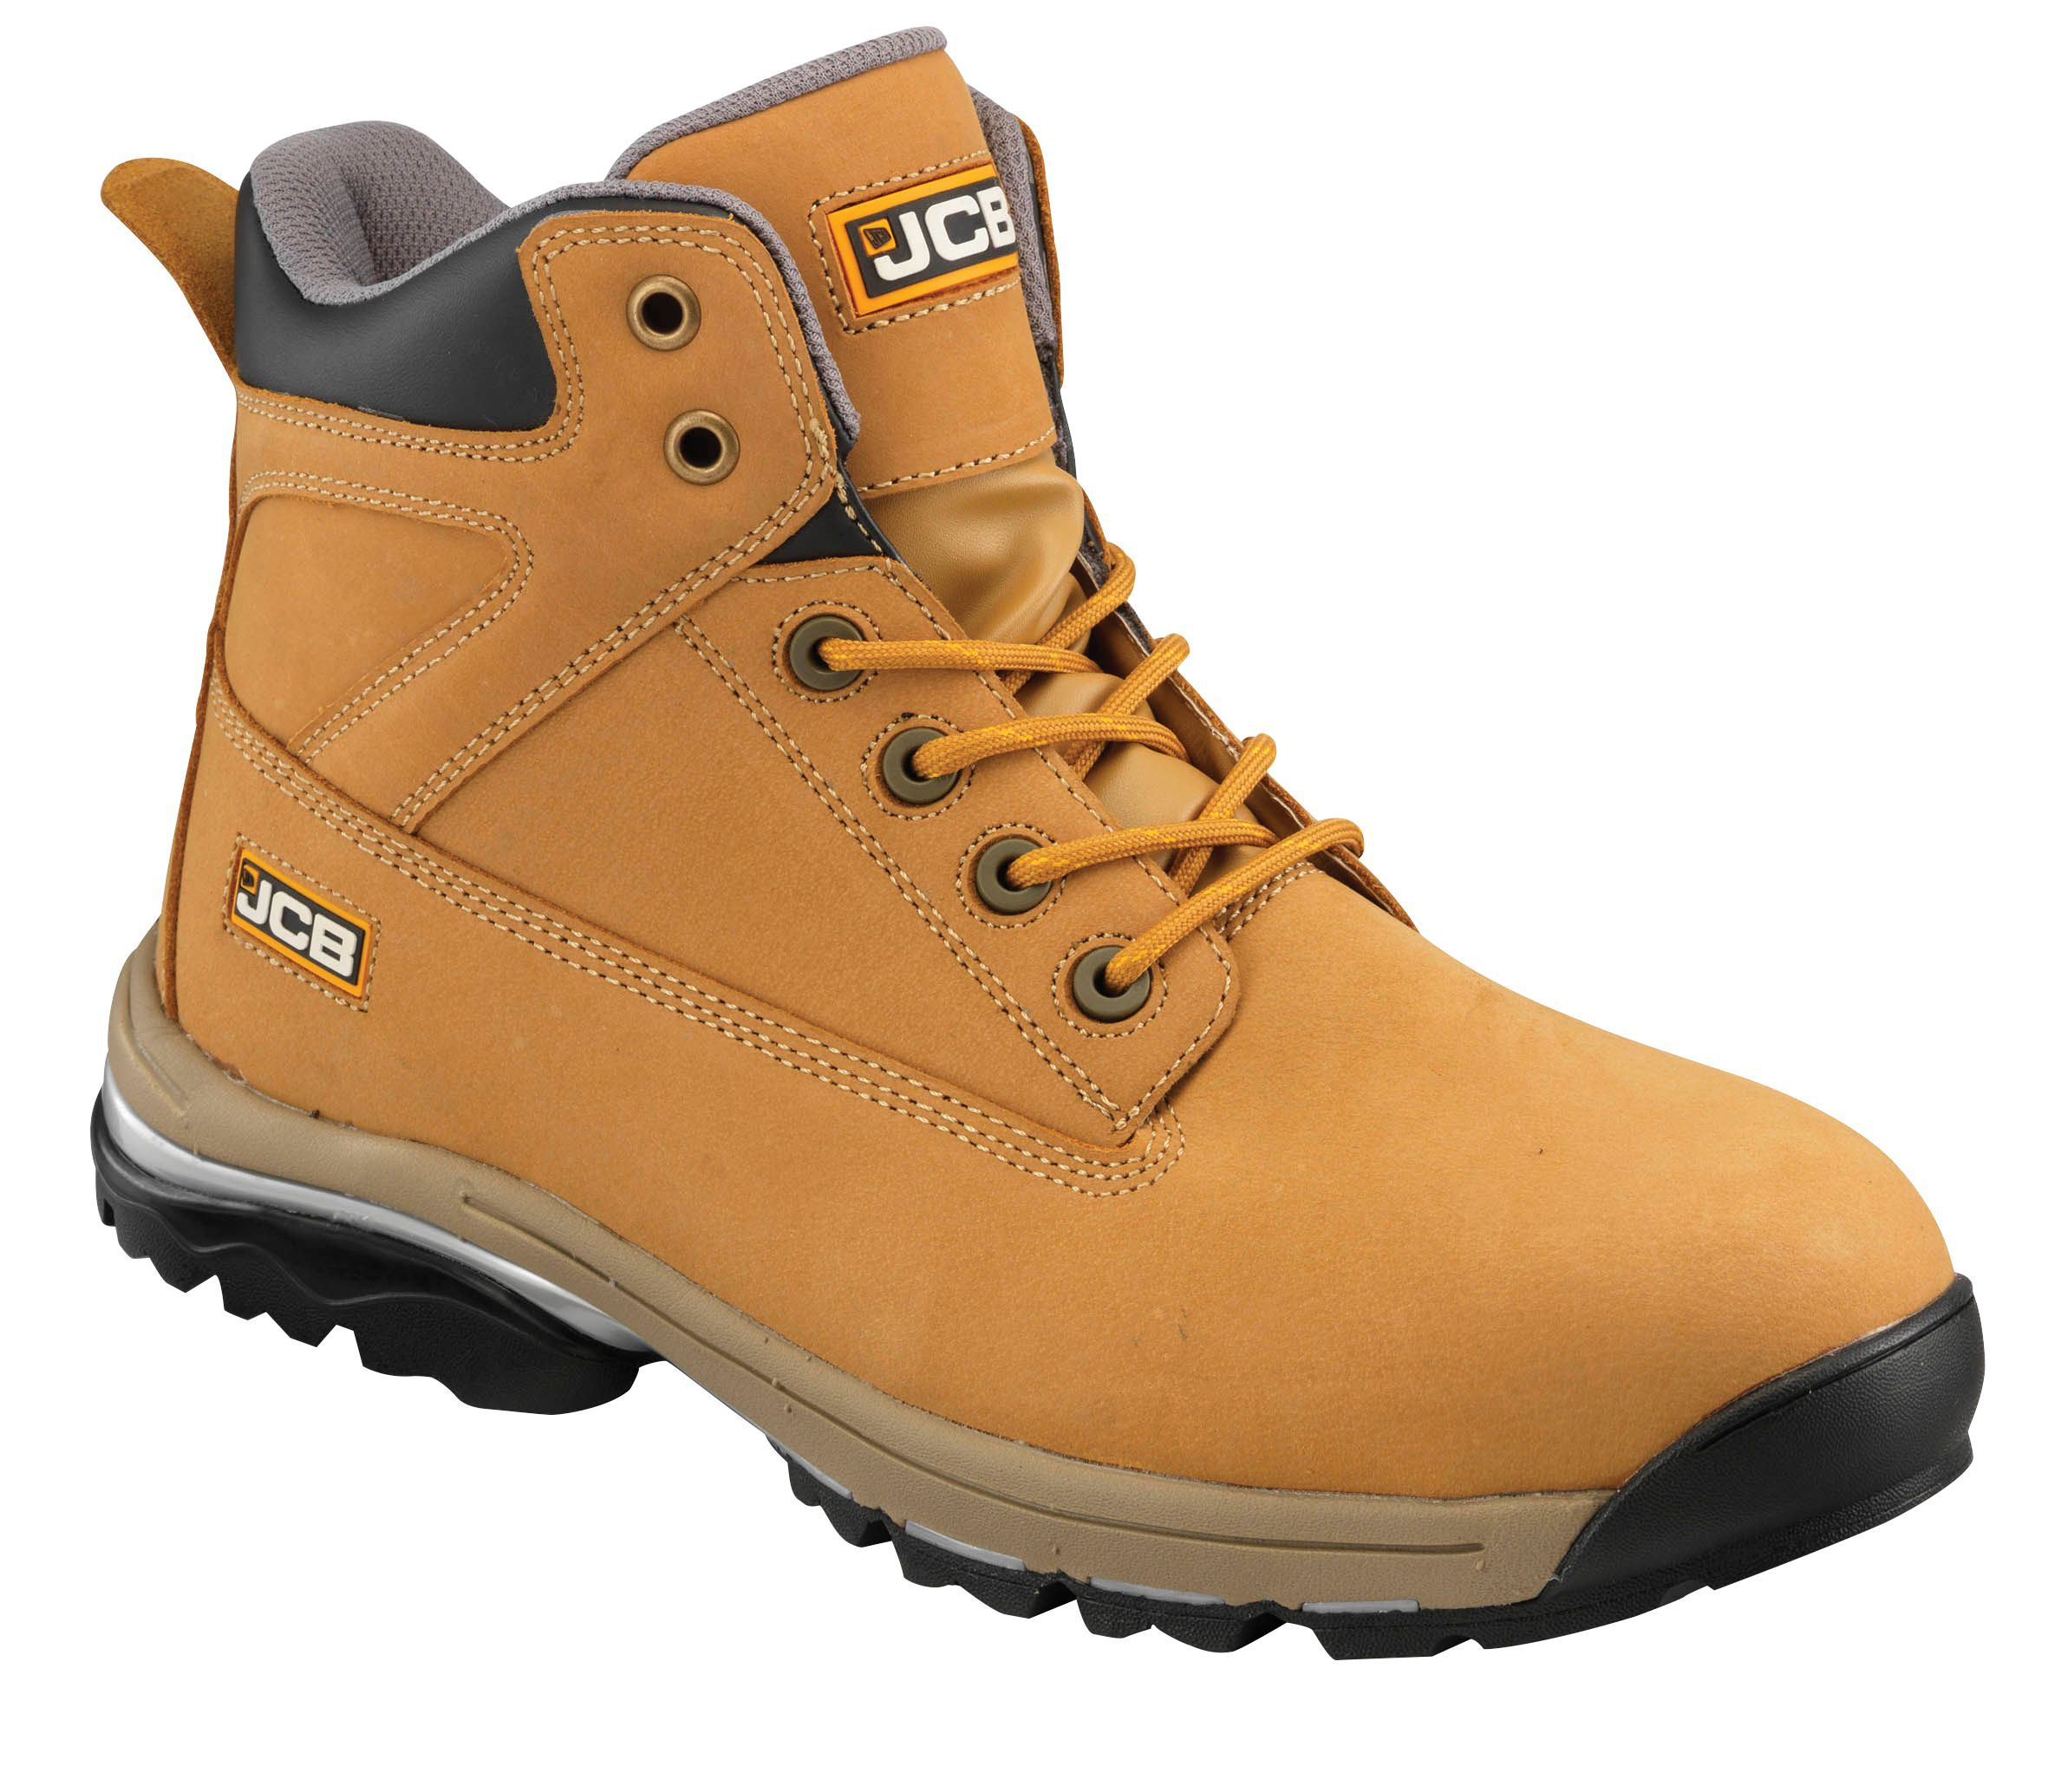 Jcb Honey Workmax Boots, Size 9